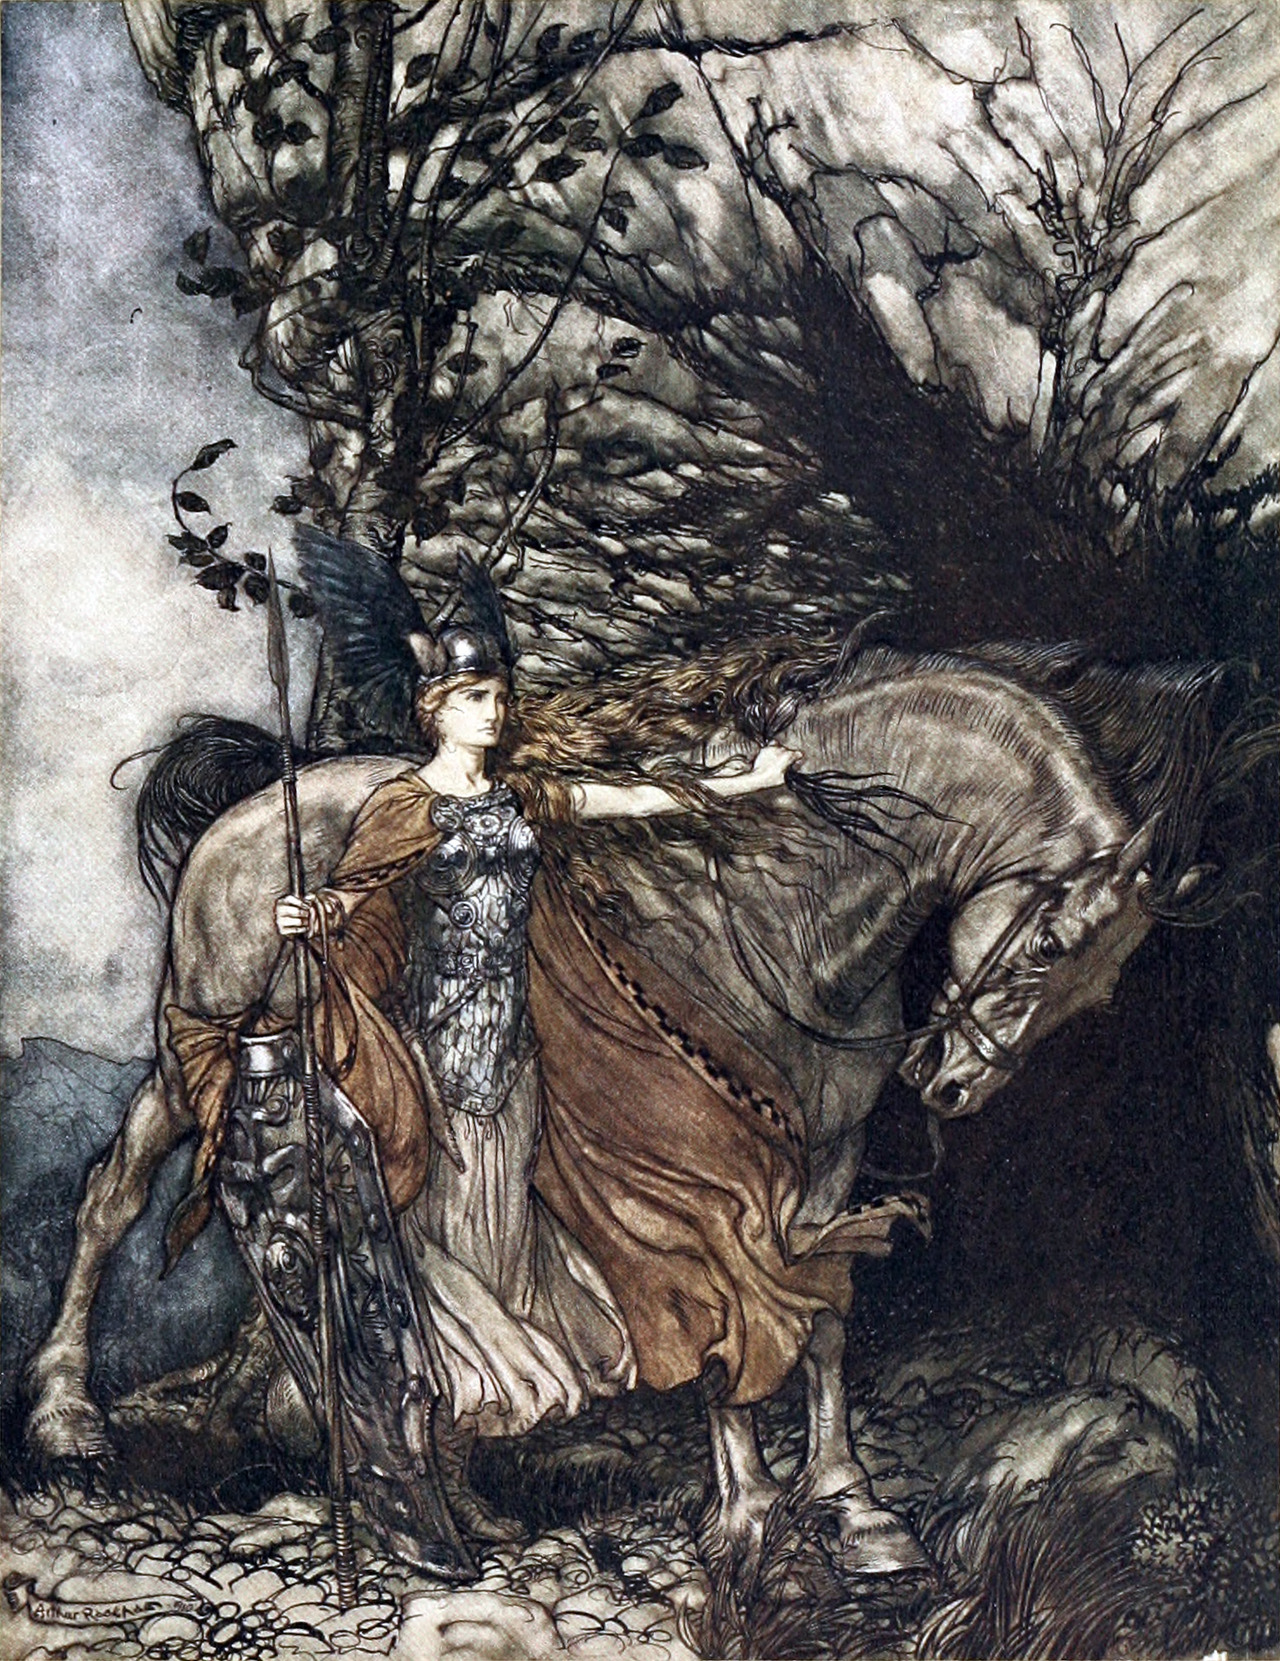 Brunnhilde the Valkyrie, 1910, by Robert Conrad